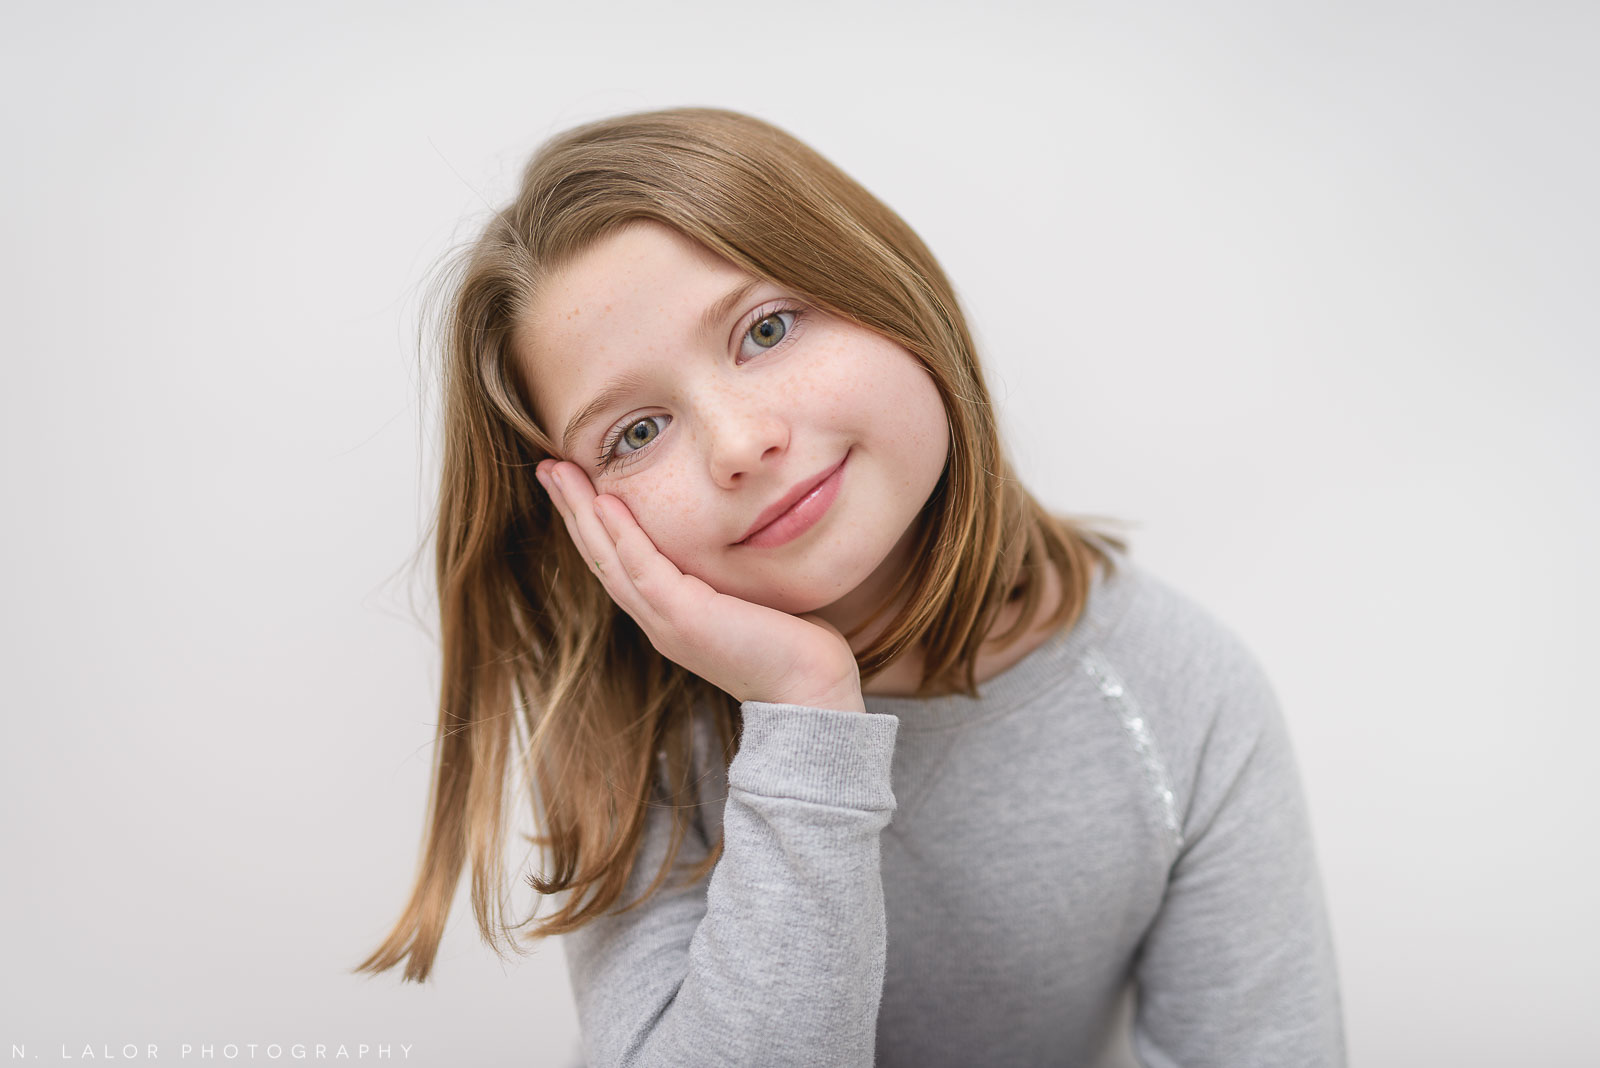 Simple and bright image of an 8-year old girl. Studio portrait by N. Lalor Photography in Greenwich Connecticut.